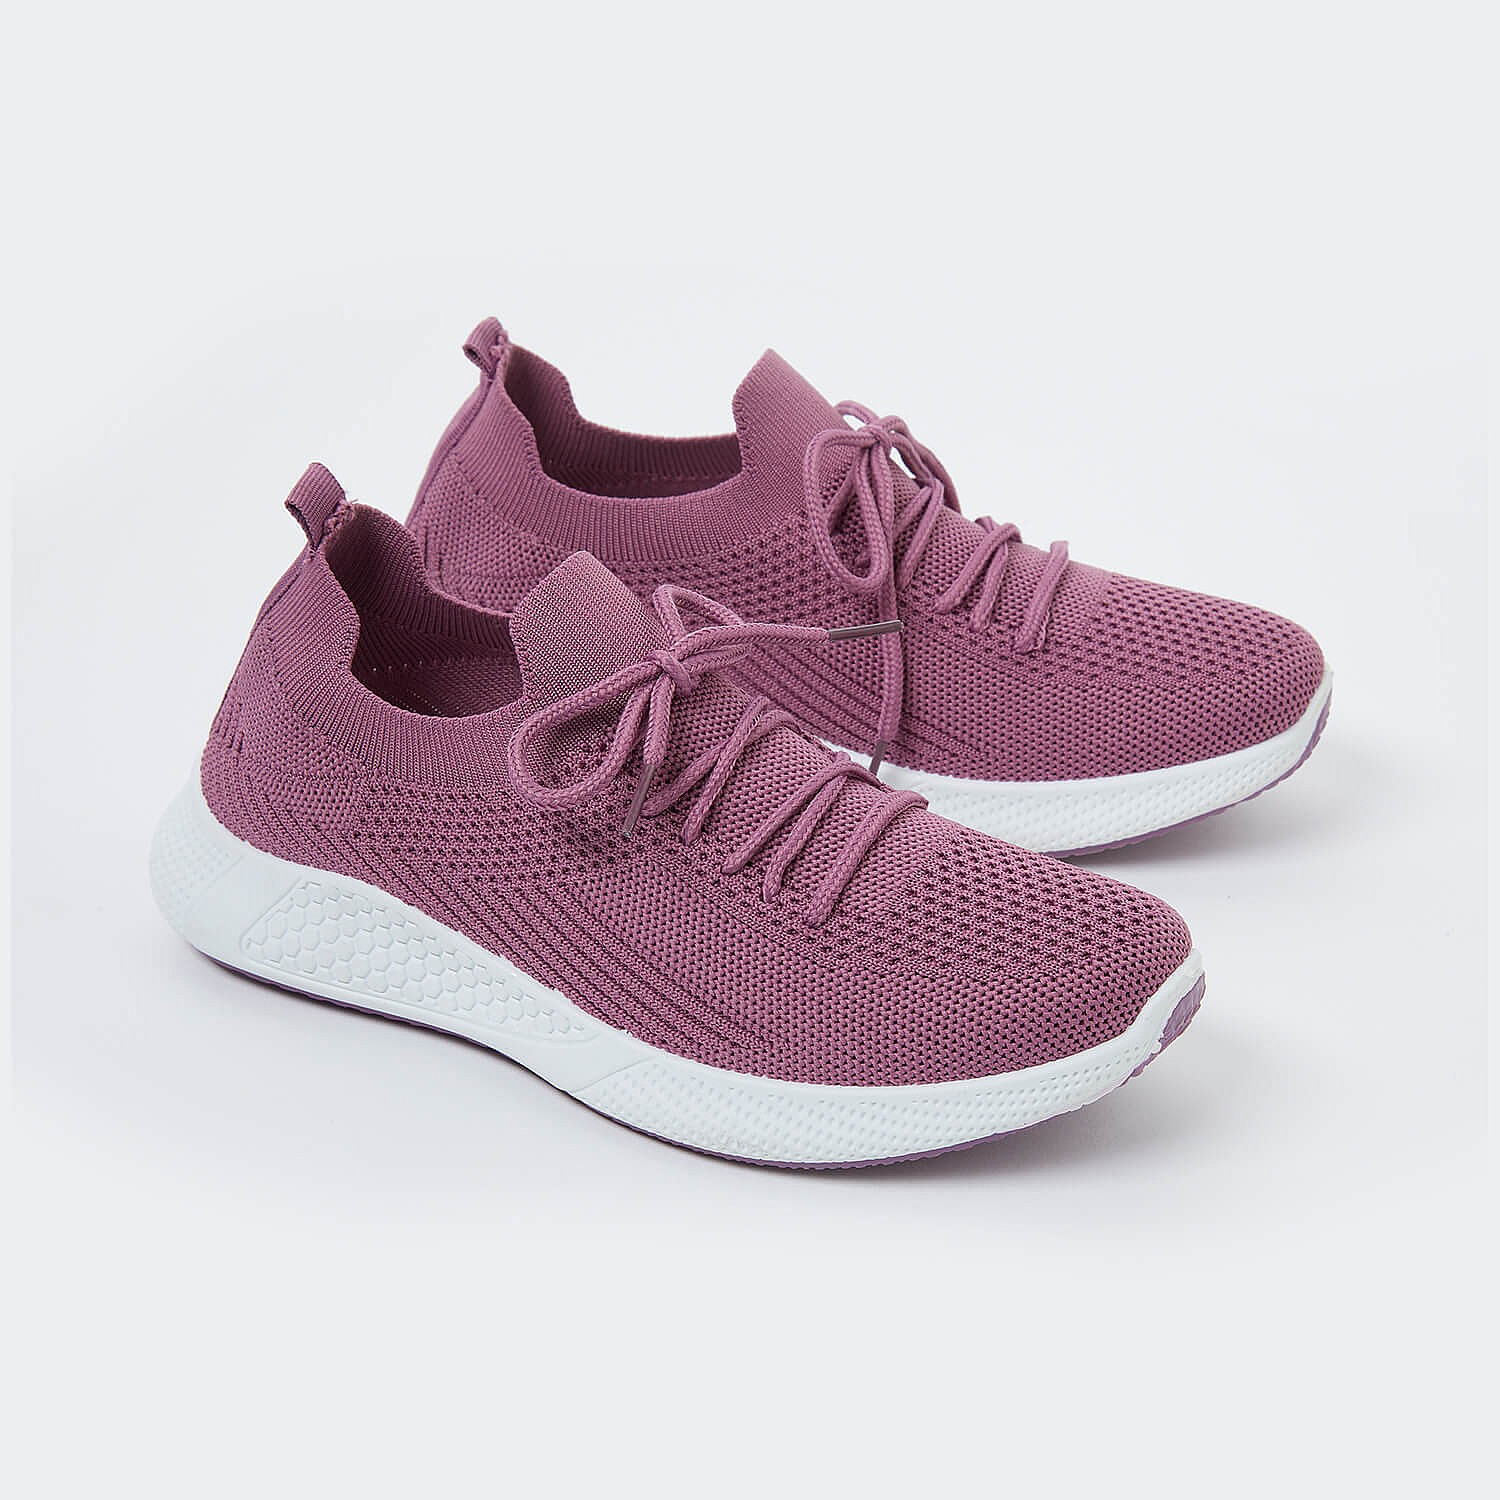 General Clothing Women's Airflow Slip-On Trainers UK Size 8 in Purple By Coopers Of Stortford